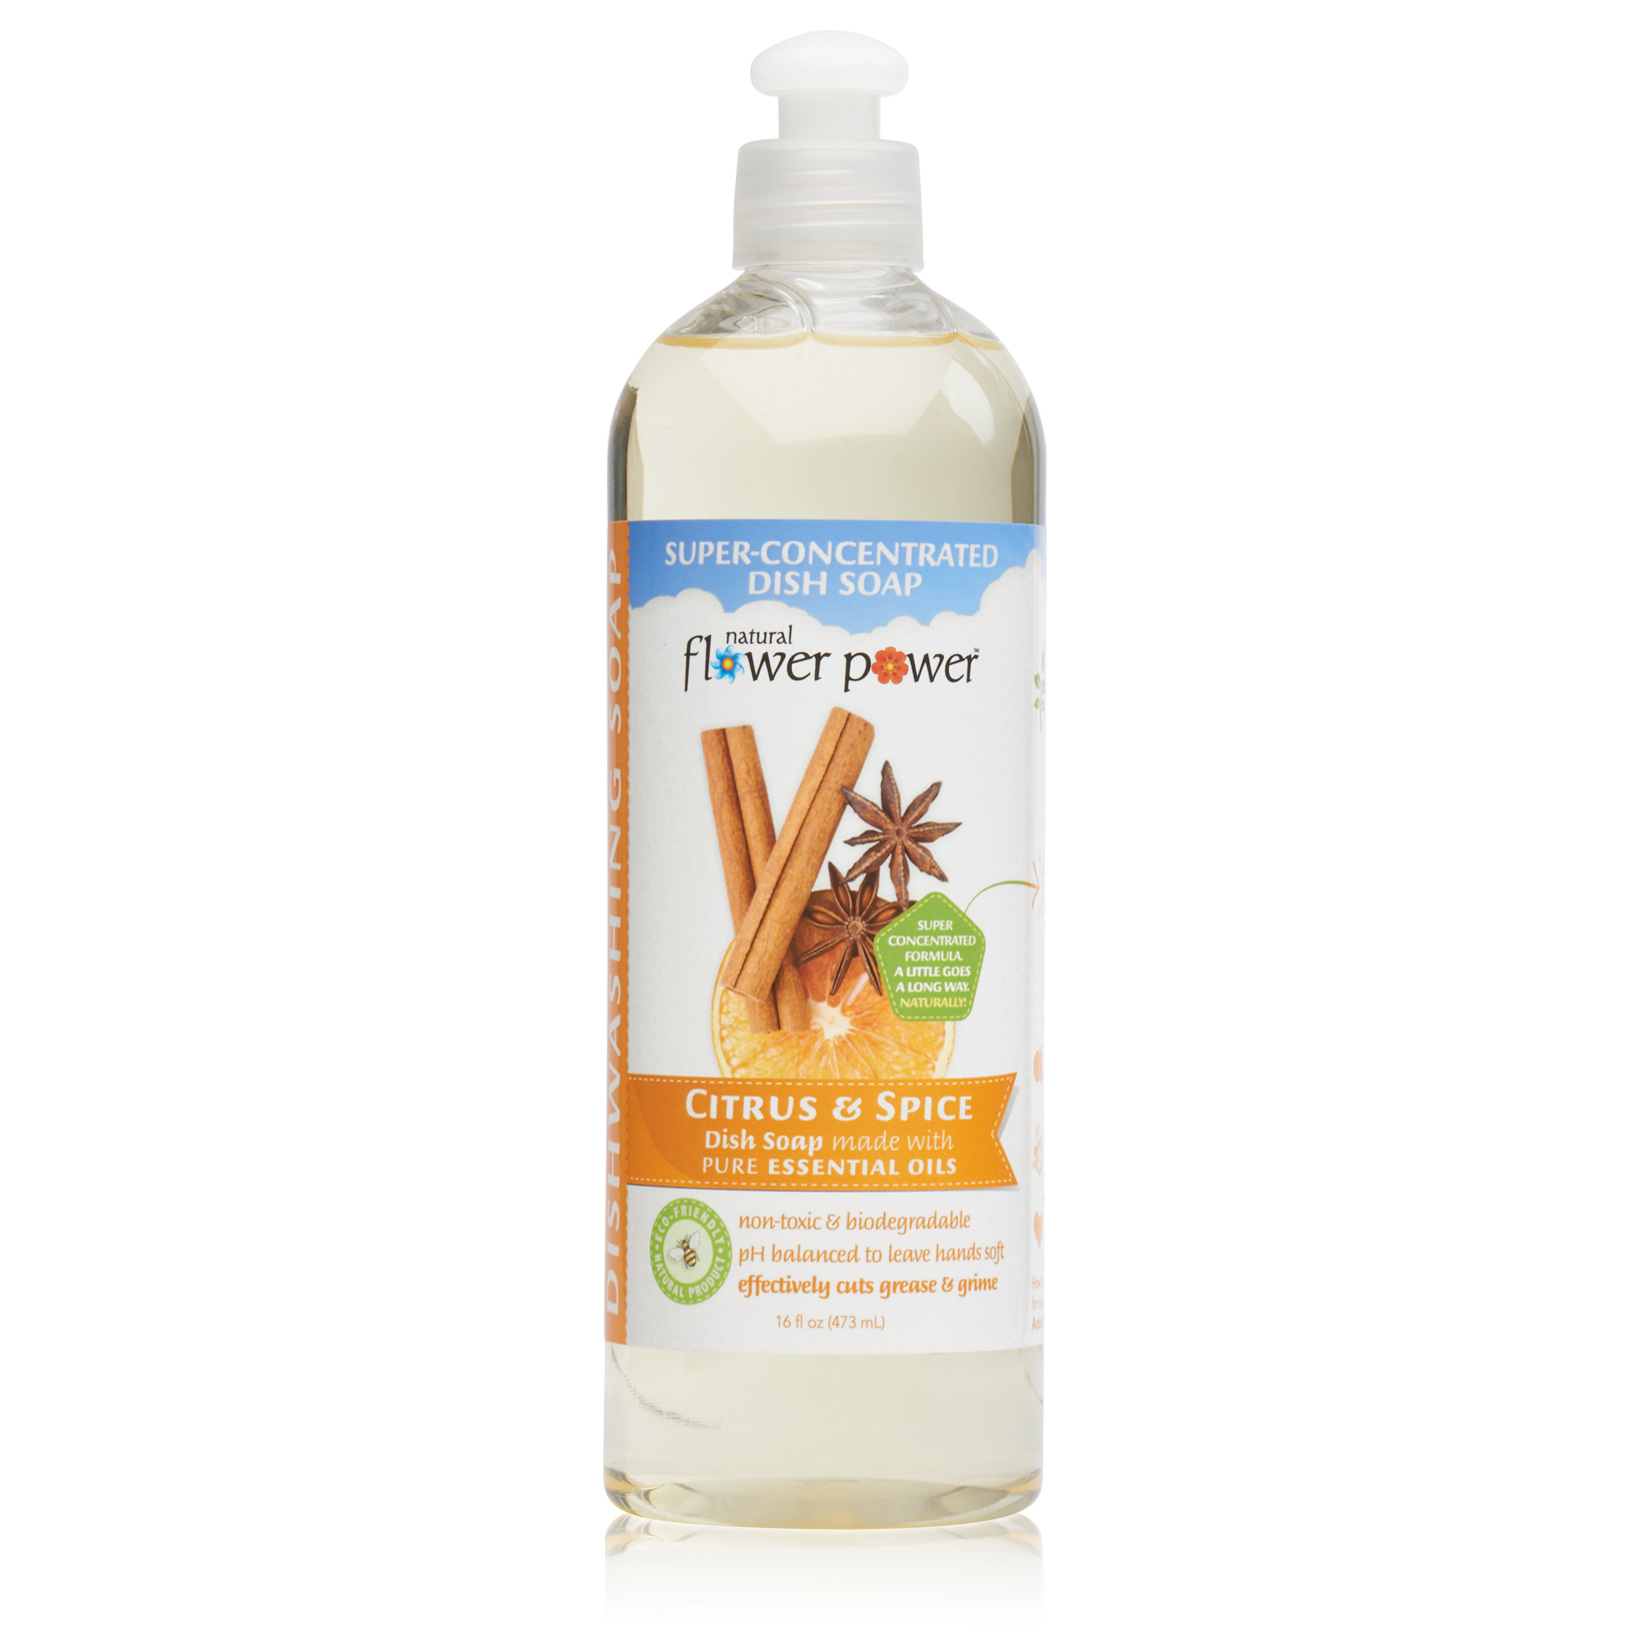 Natural Dish Soap Citrus & Spice – Front